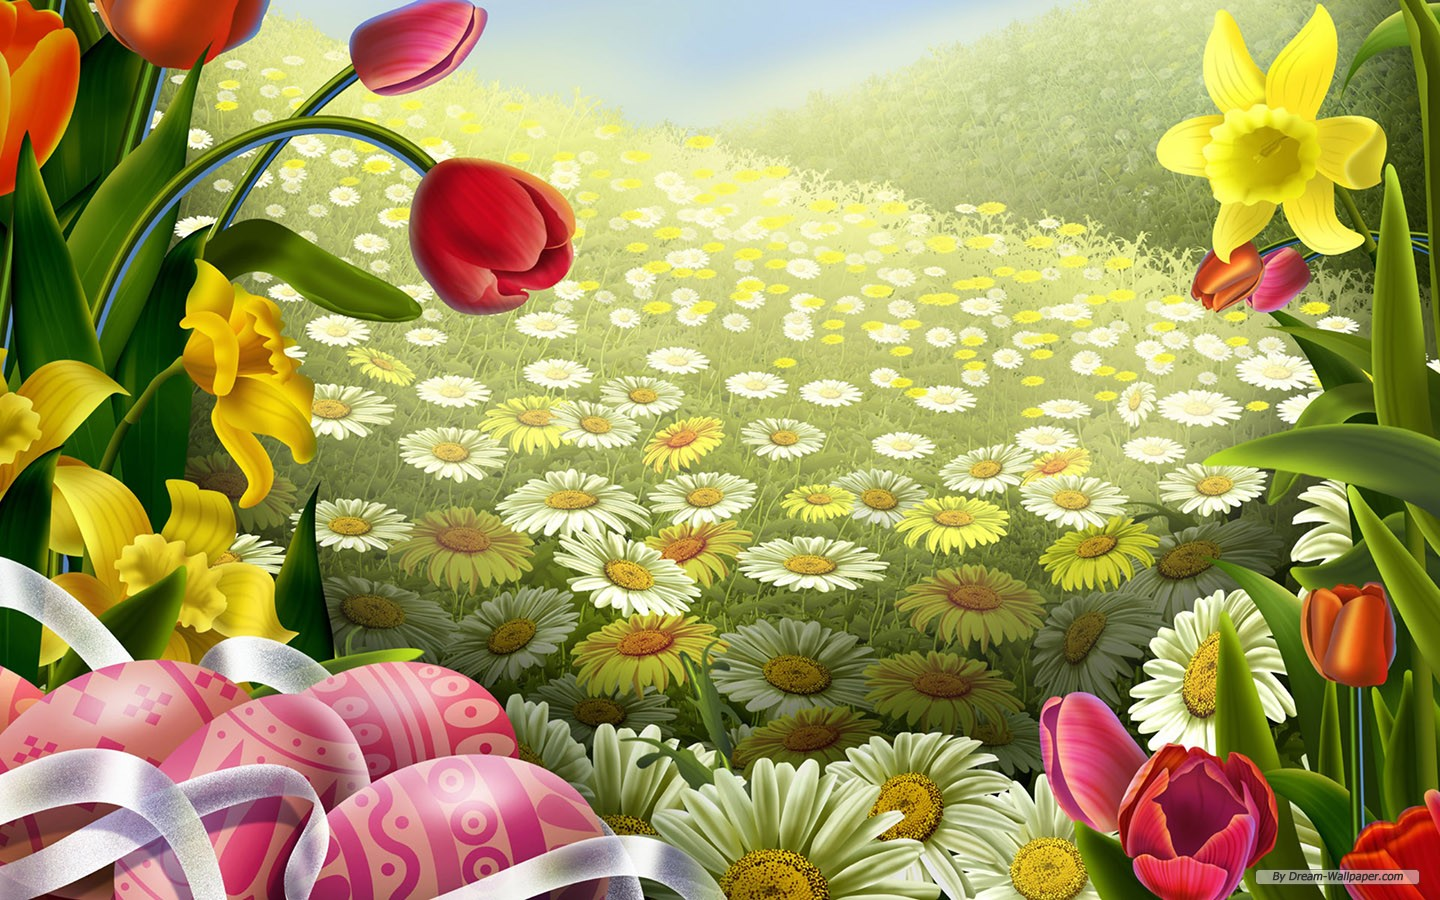 2013 Top 25 Cure Easter Day Wallpapers for Android Phones 1440x900